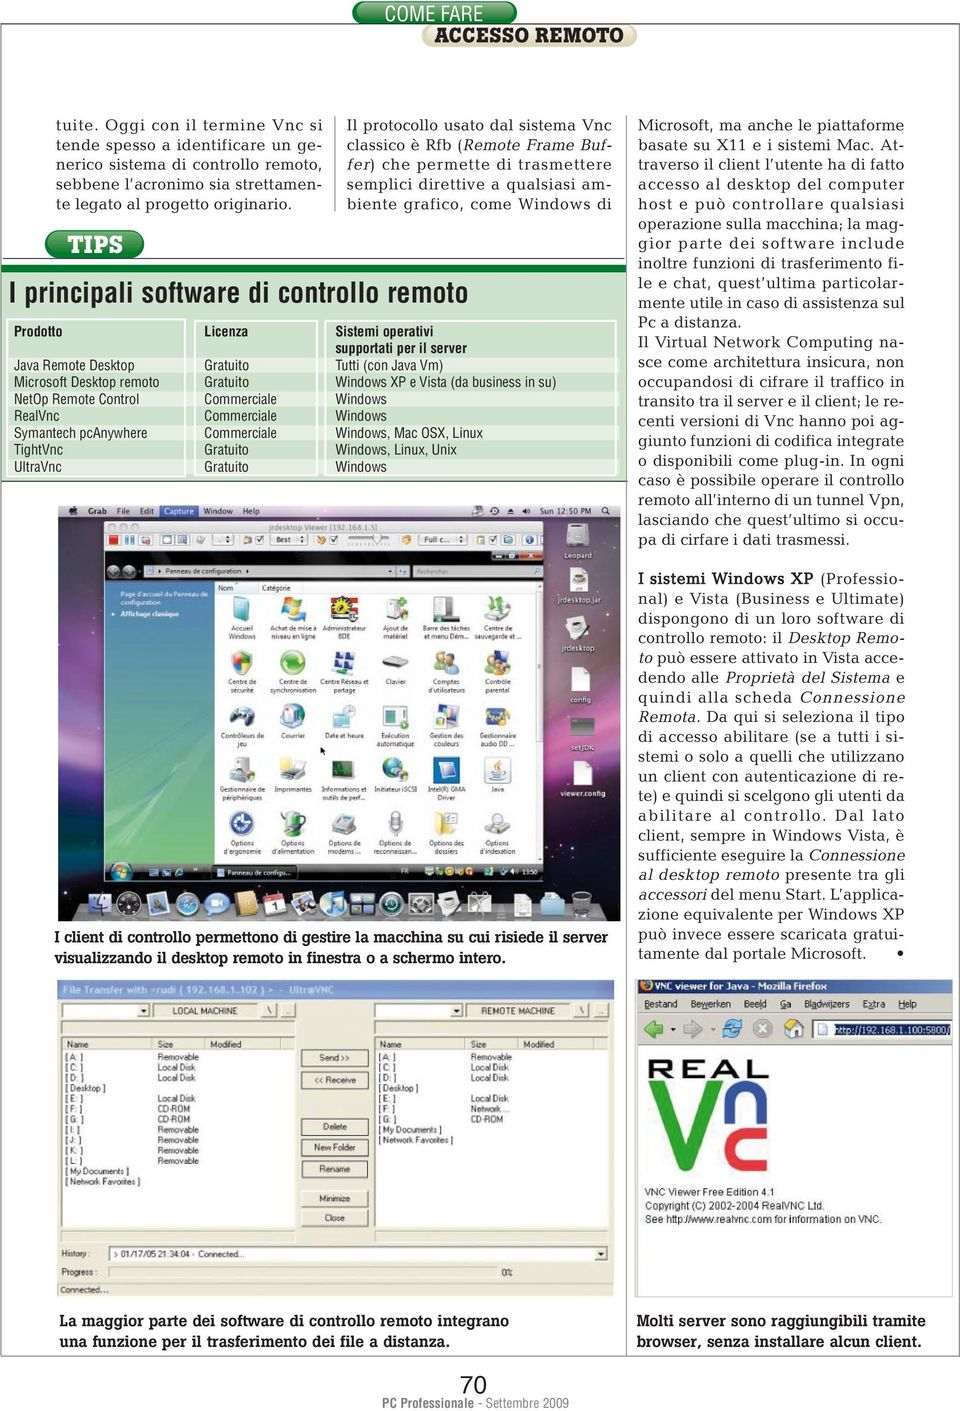 come Windows di Prodotto Licenza Sistemi operativi supportati per il server Java Remote Desktop Gratuito Tutti (con Java Vm) Microsoft Desktop remoto Gratuito Windows XP e Vista (da business in su)